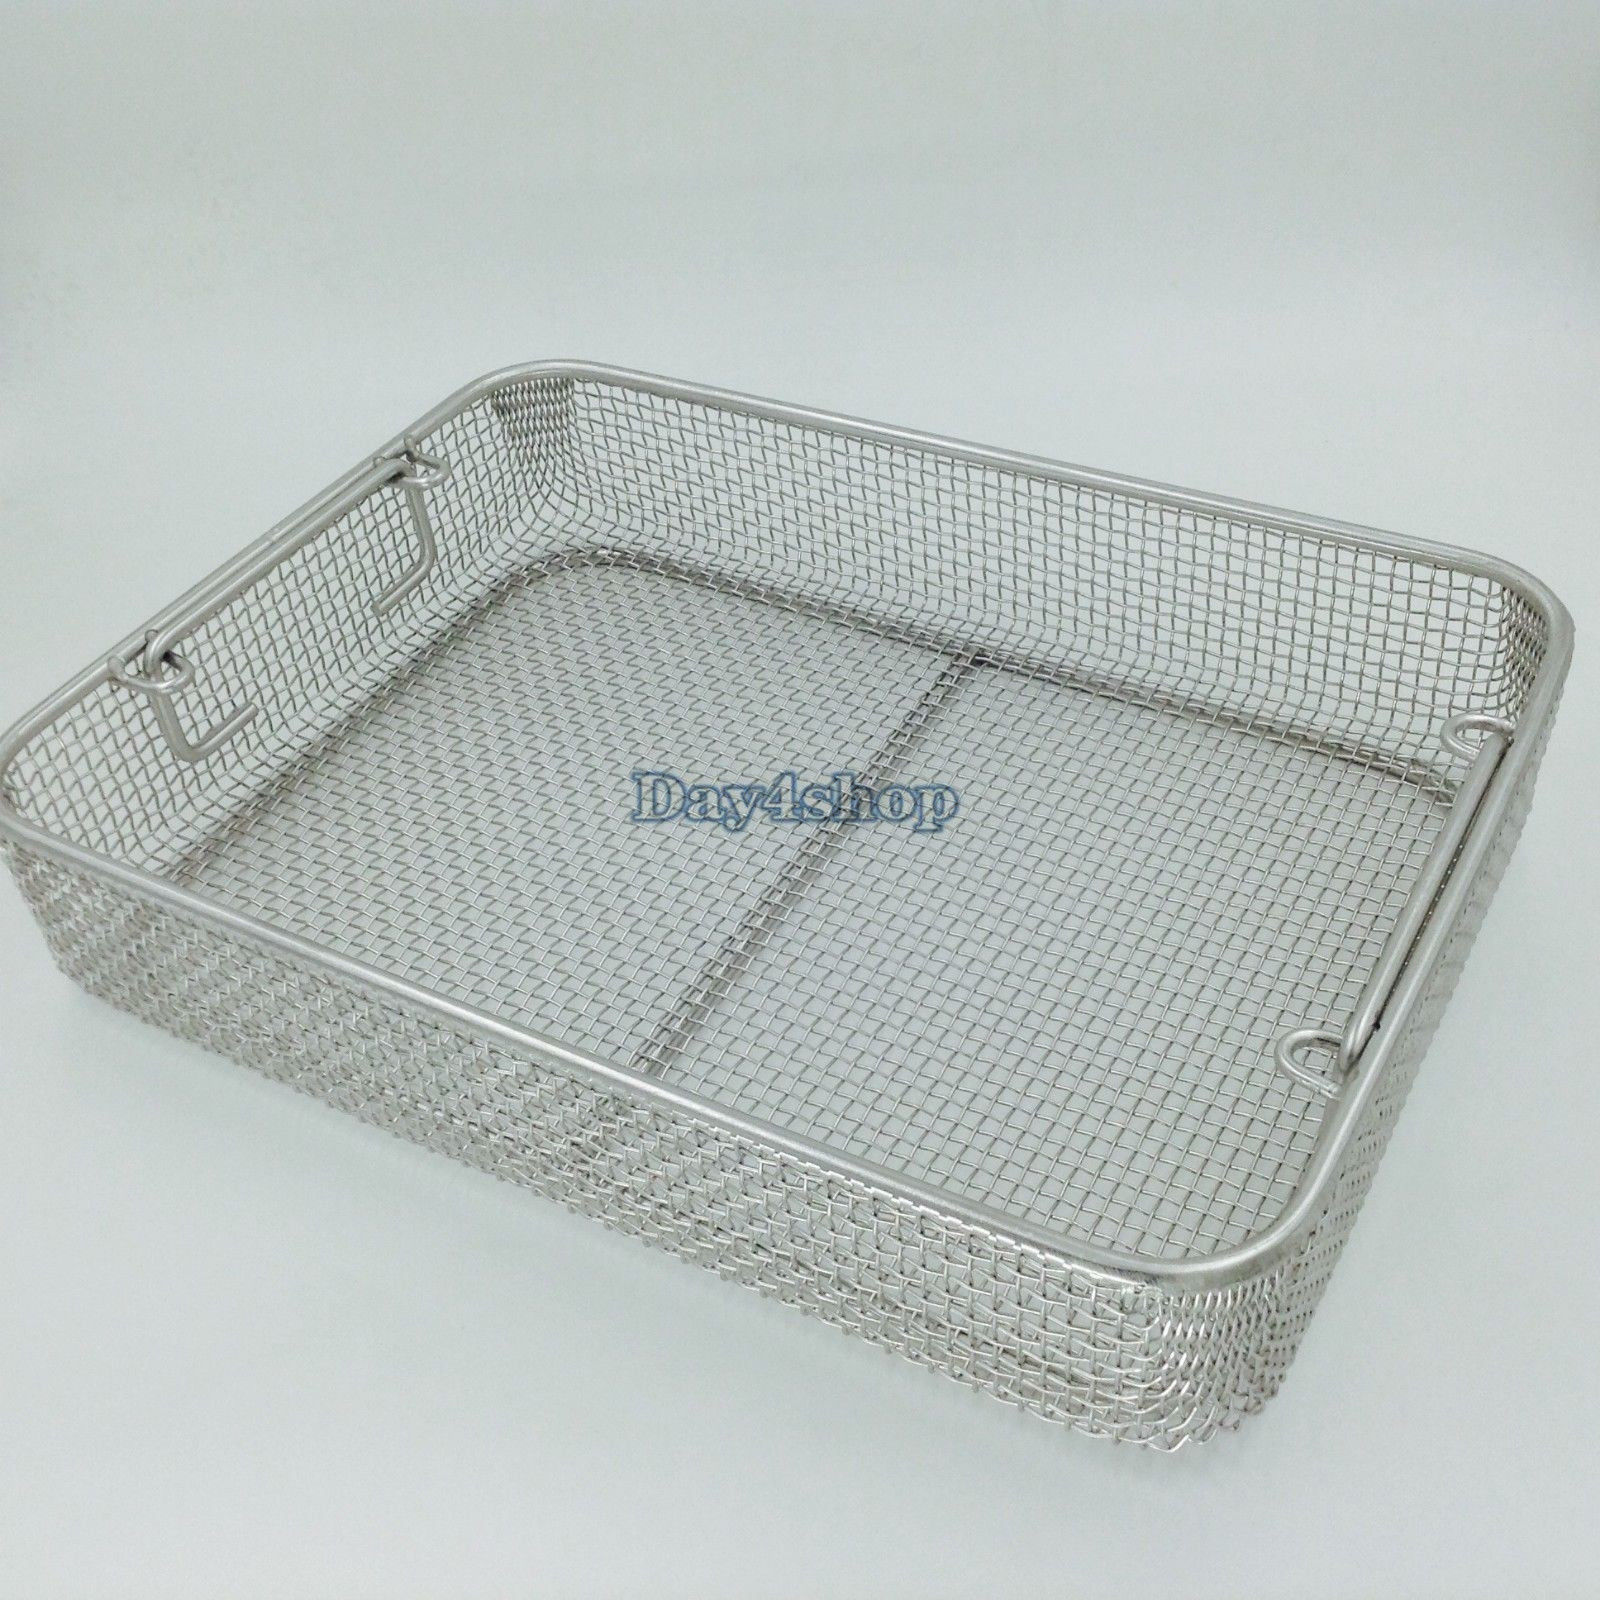 Surgical ophthalmic instruments Stainless steel sterilization tray case box surgical instrument